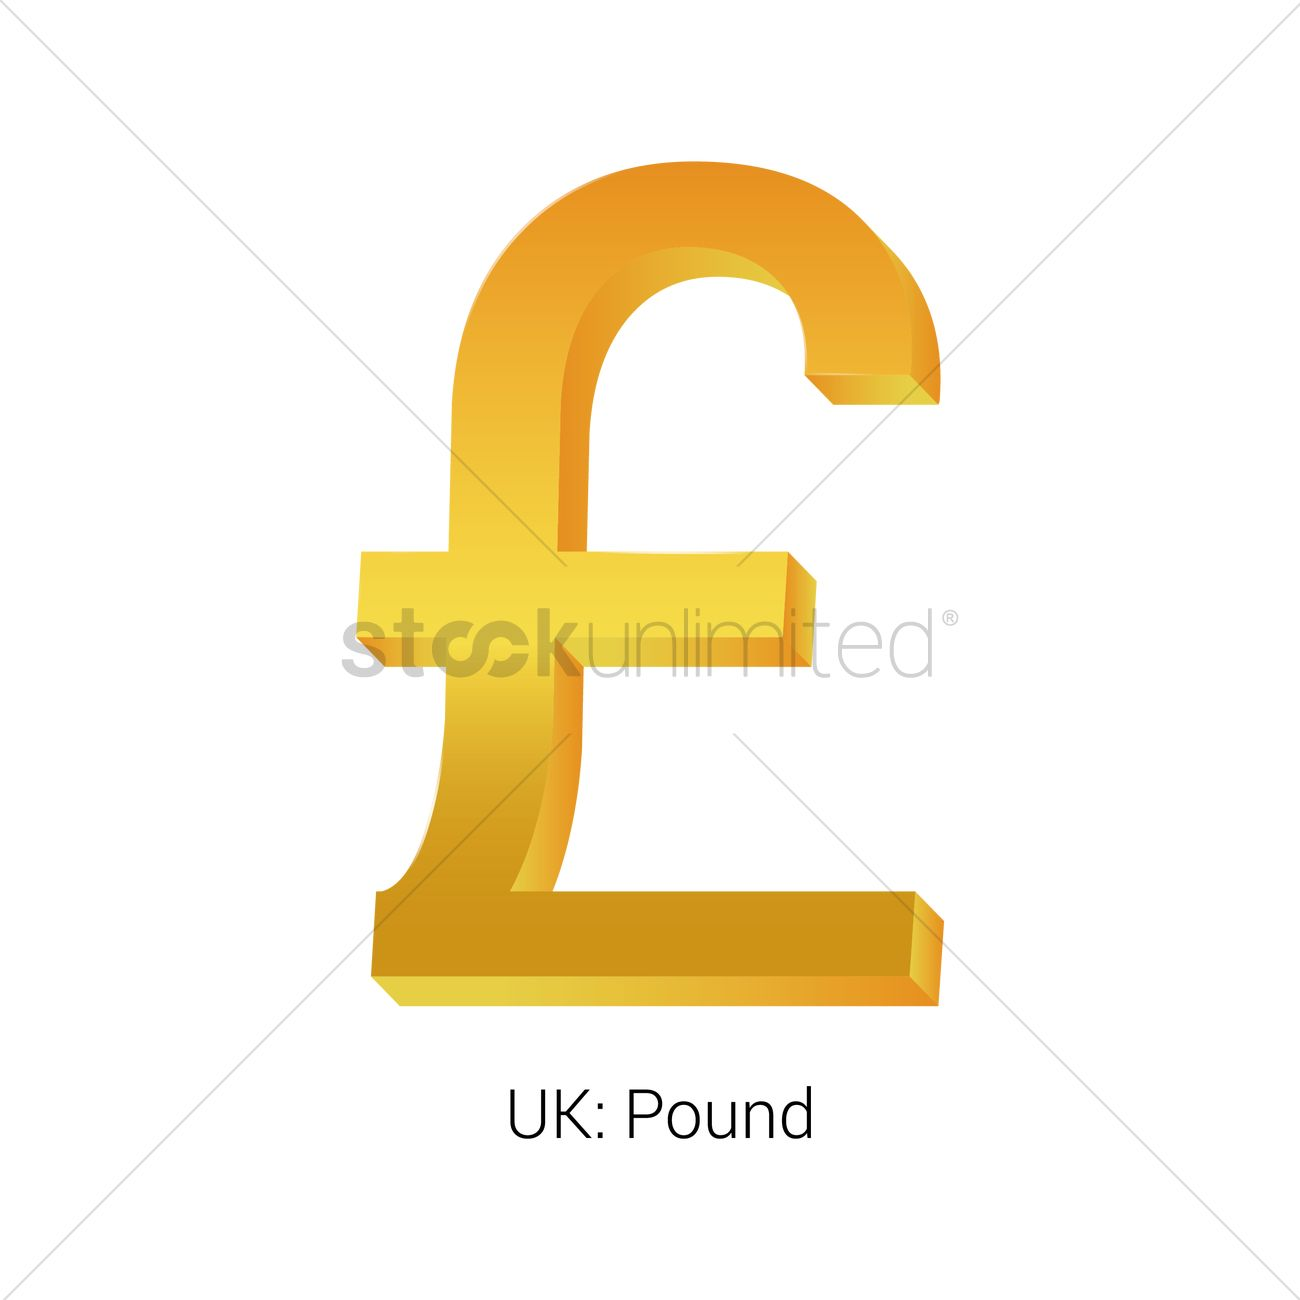 Pound Currency Symbol Vector Image 1821540 Stockunlimited